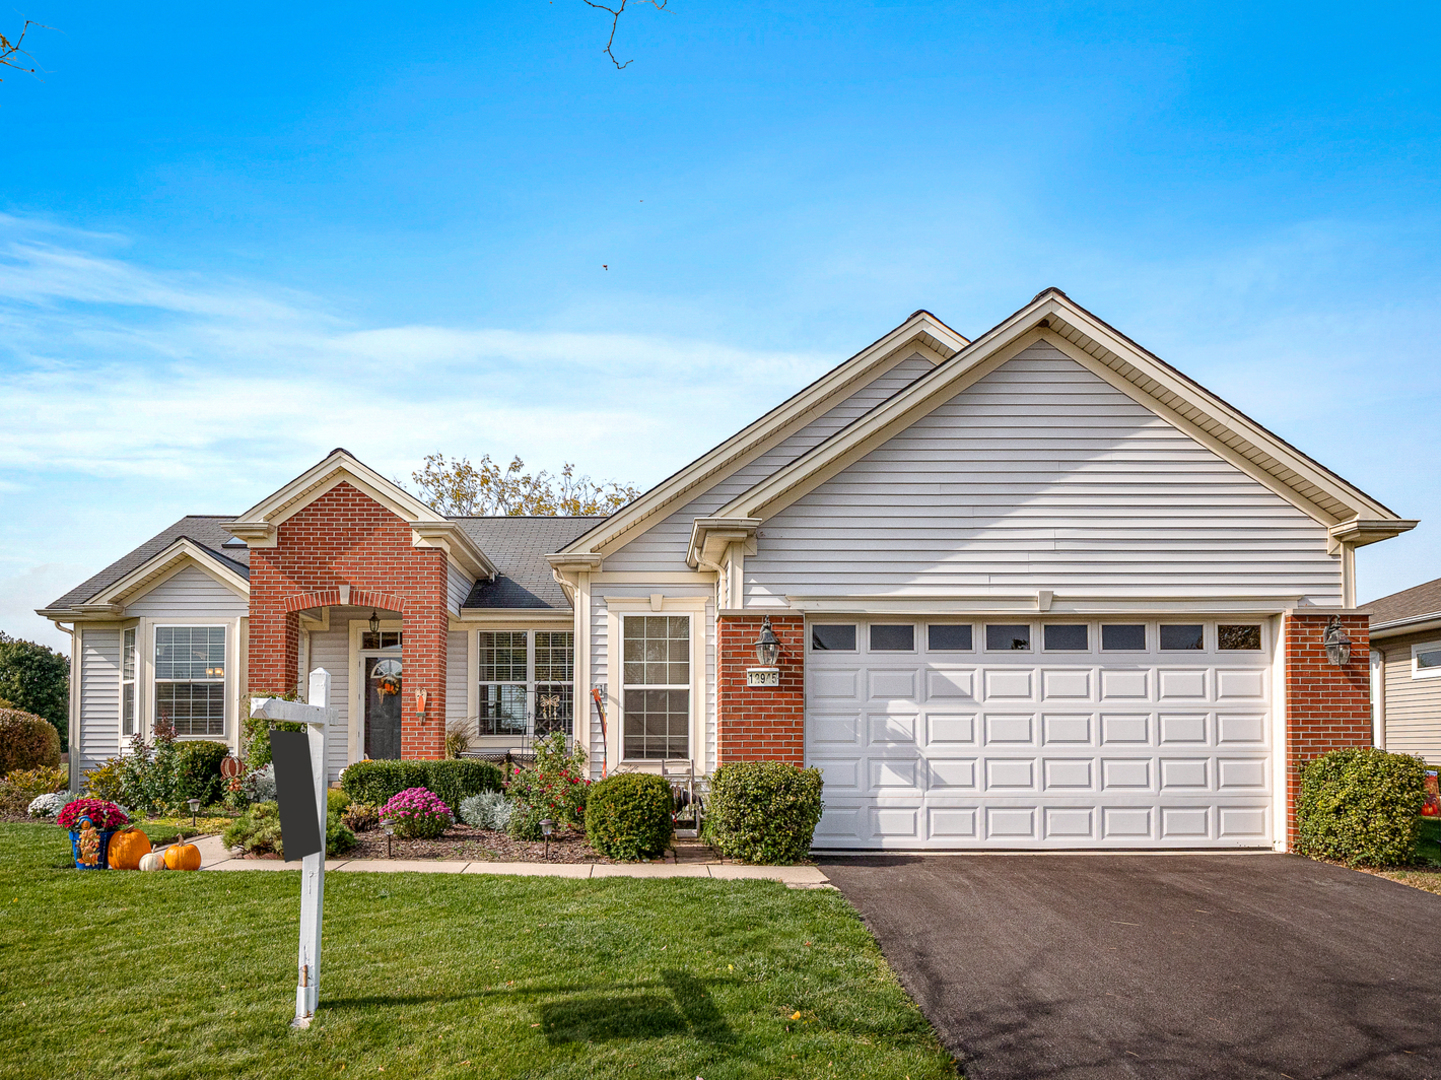 Photo for 12945 Cold Springs Drive, Huntley, IL 60142 (MLS # 10902114)